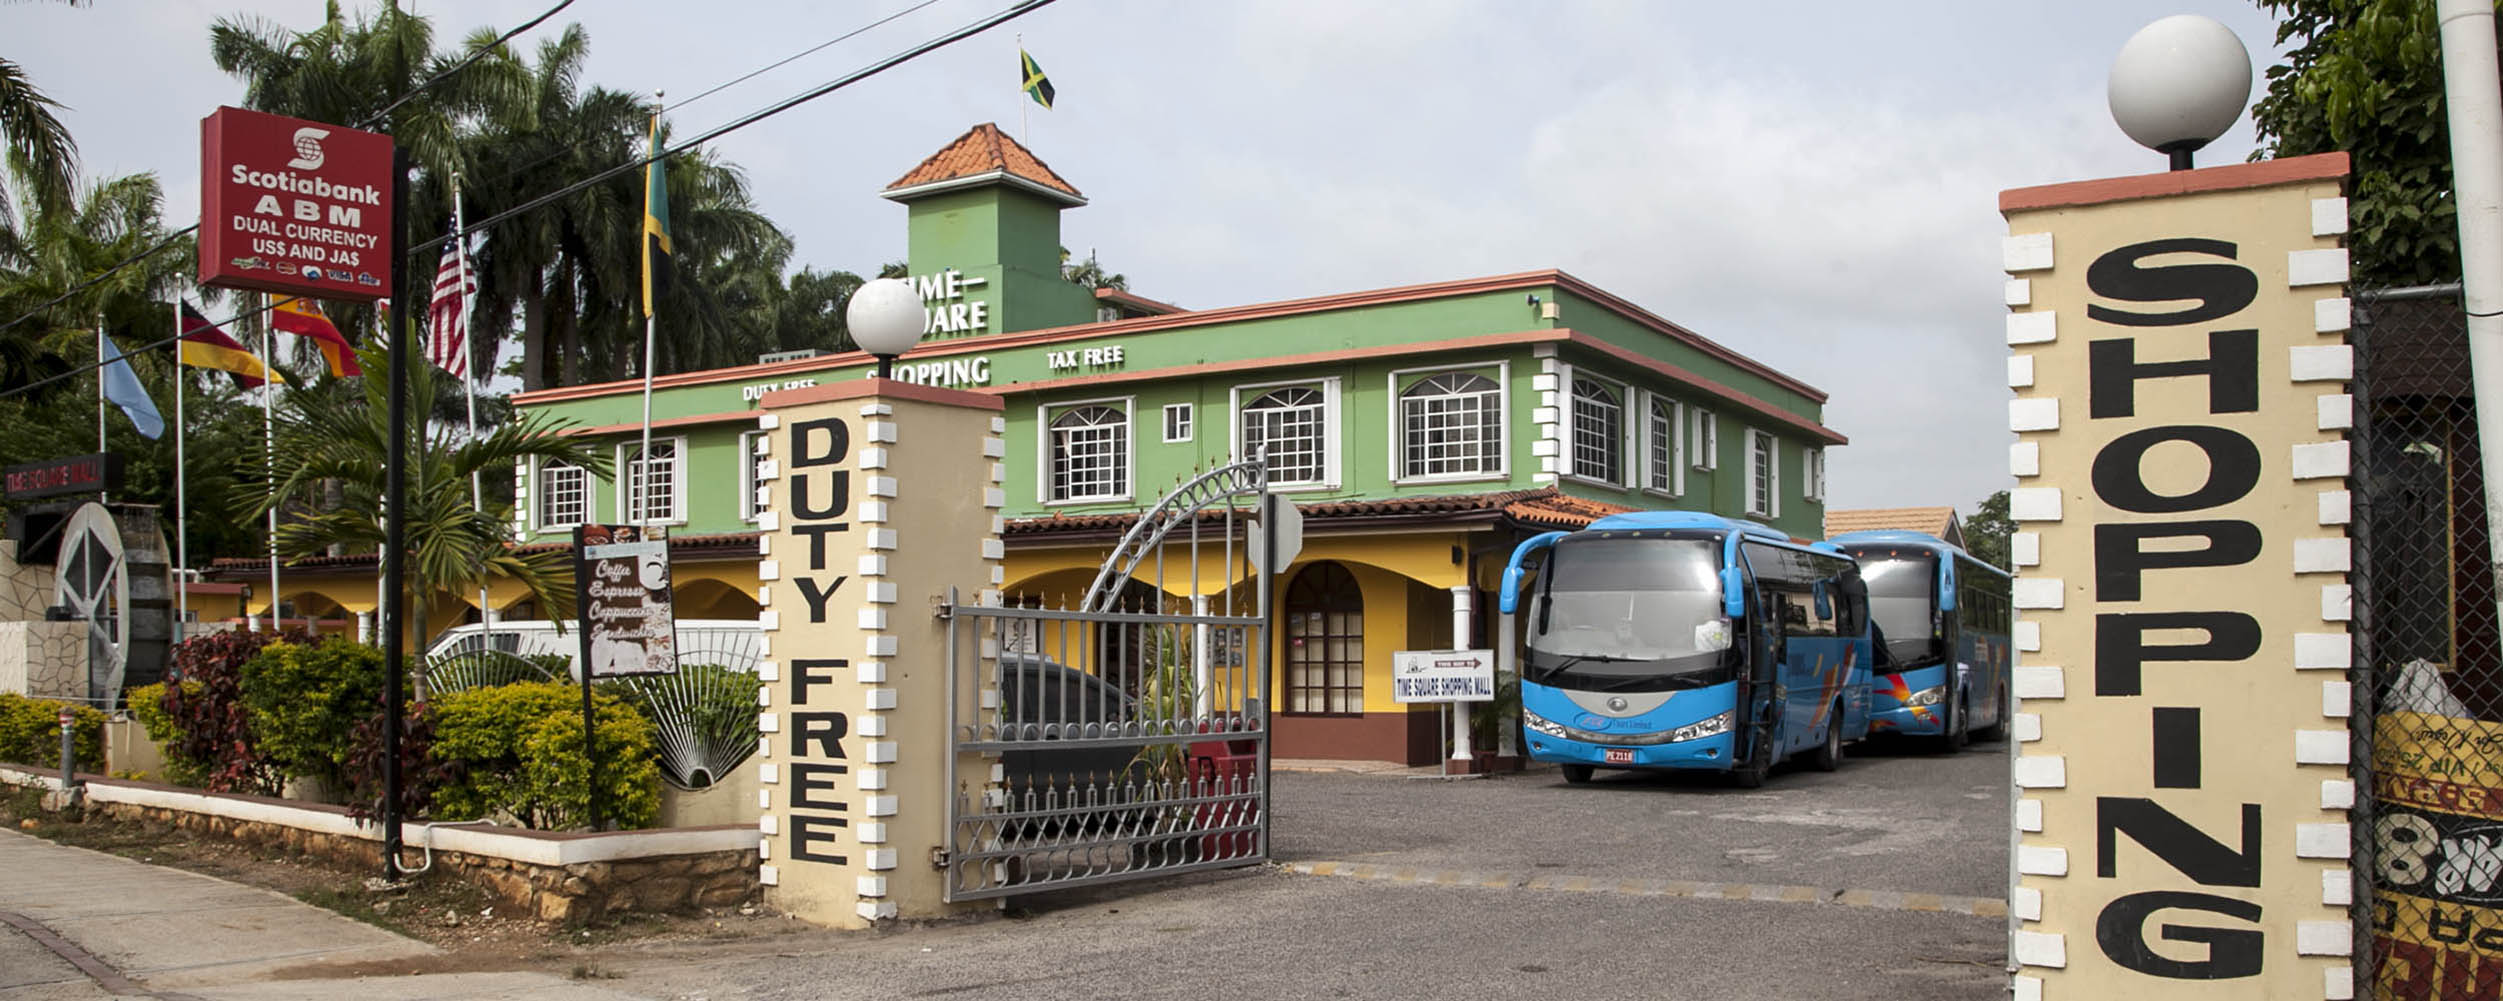 Time Square Duty Free Shopping, Norman Manley Boulevard - Negril Jamaica